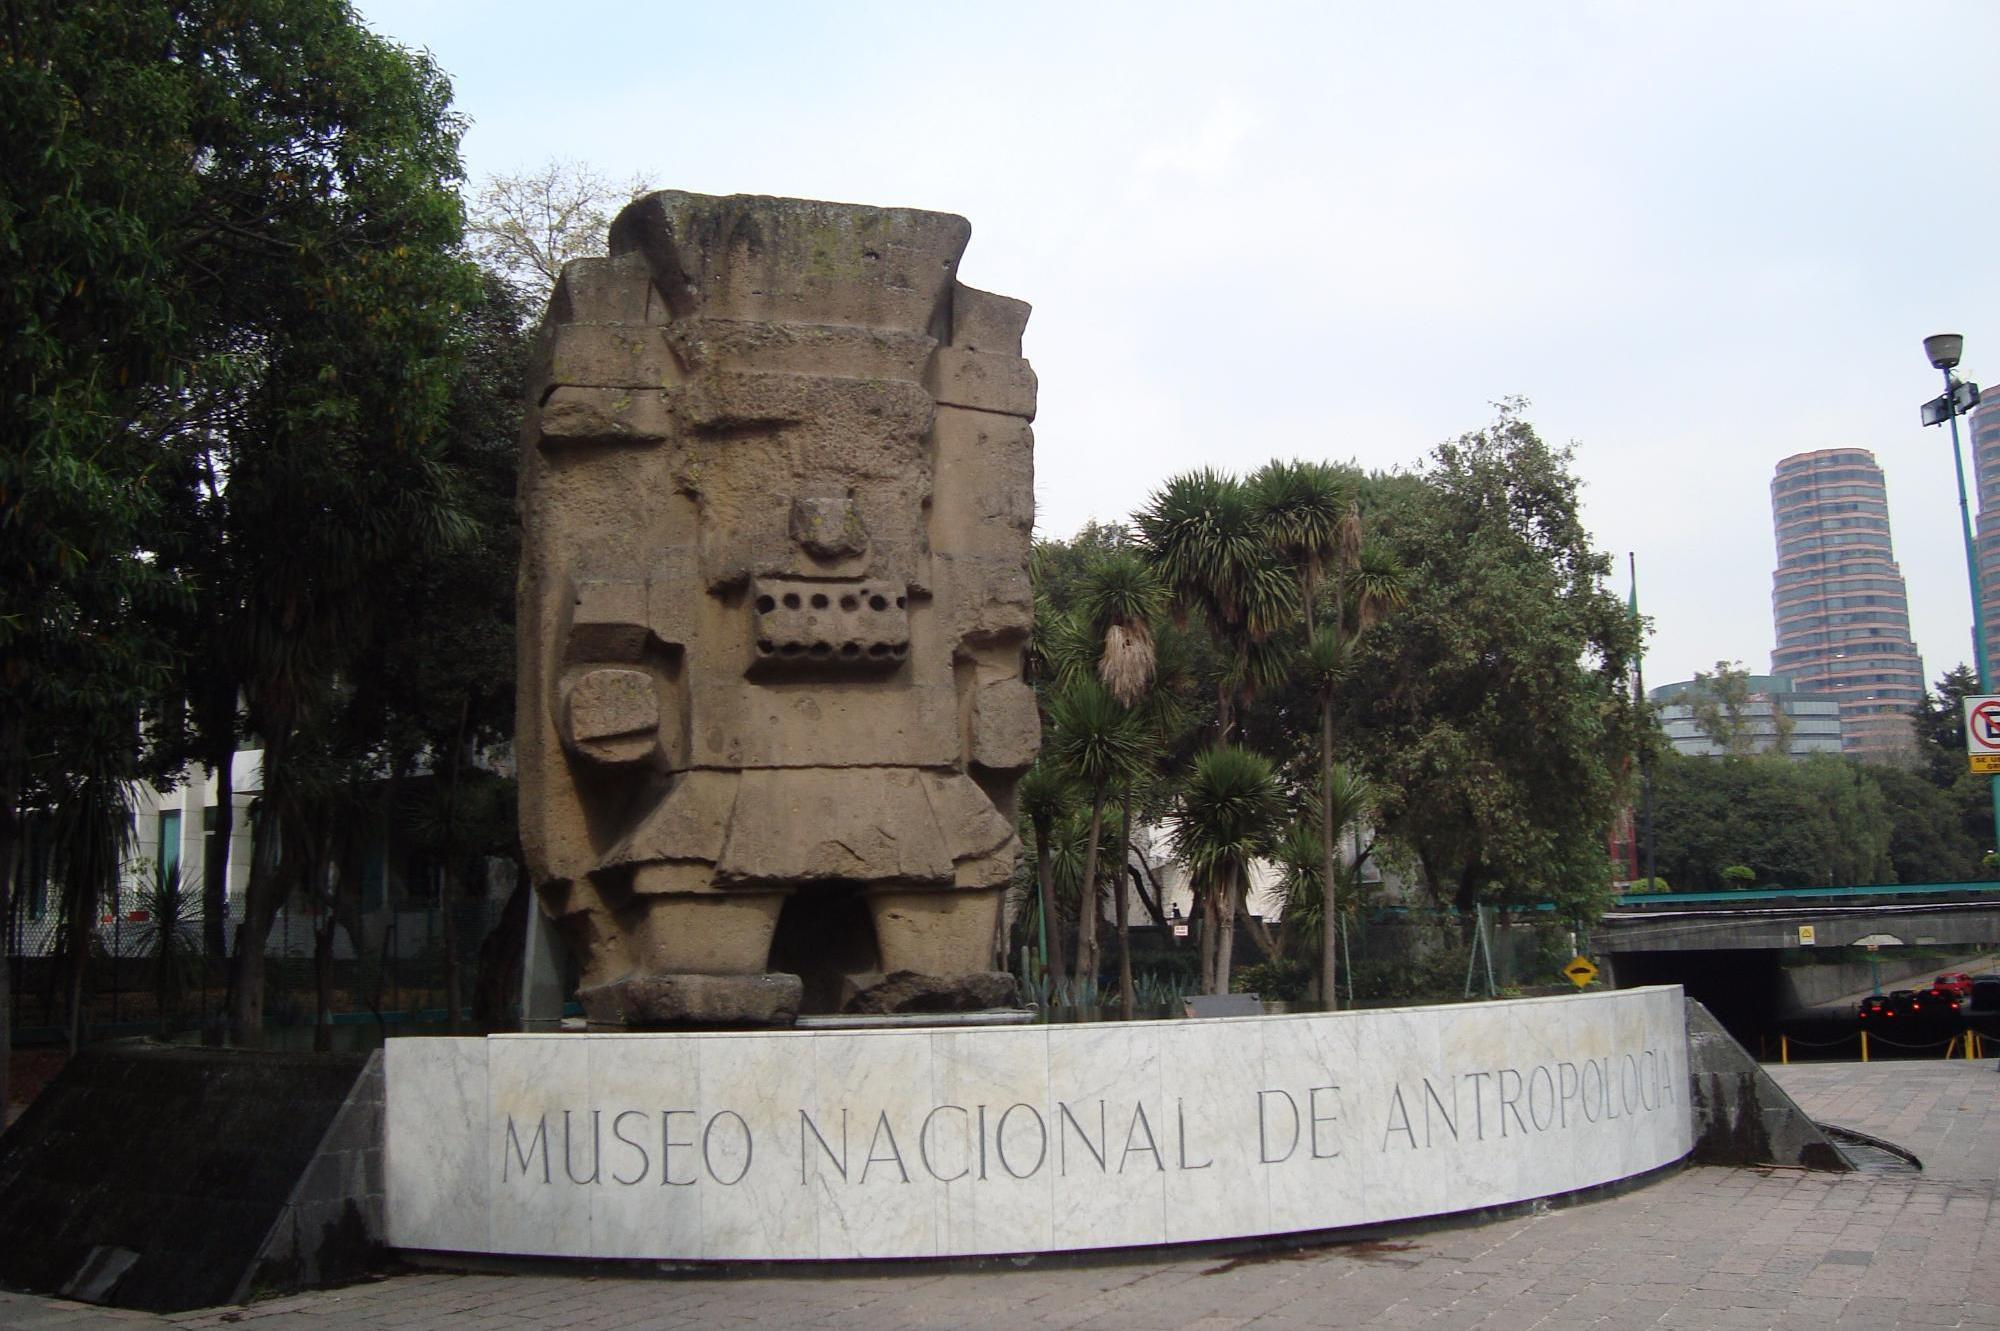 """<p>The <a href=""""http://www.mna.inah.gob.mx/index.html"""" target=""""_blank"""">Museo Nacional de Antropología </a>is the national museum of Mexico and it houses archaelogical and anthropoligcal artefacts from Mexico's history. The Aztec calendar stone, the Stone of the Sun, is just one of the impressive objects that can be found there.</p>"""